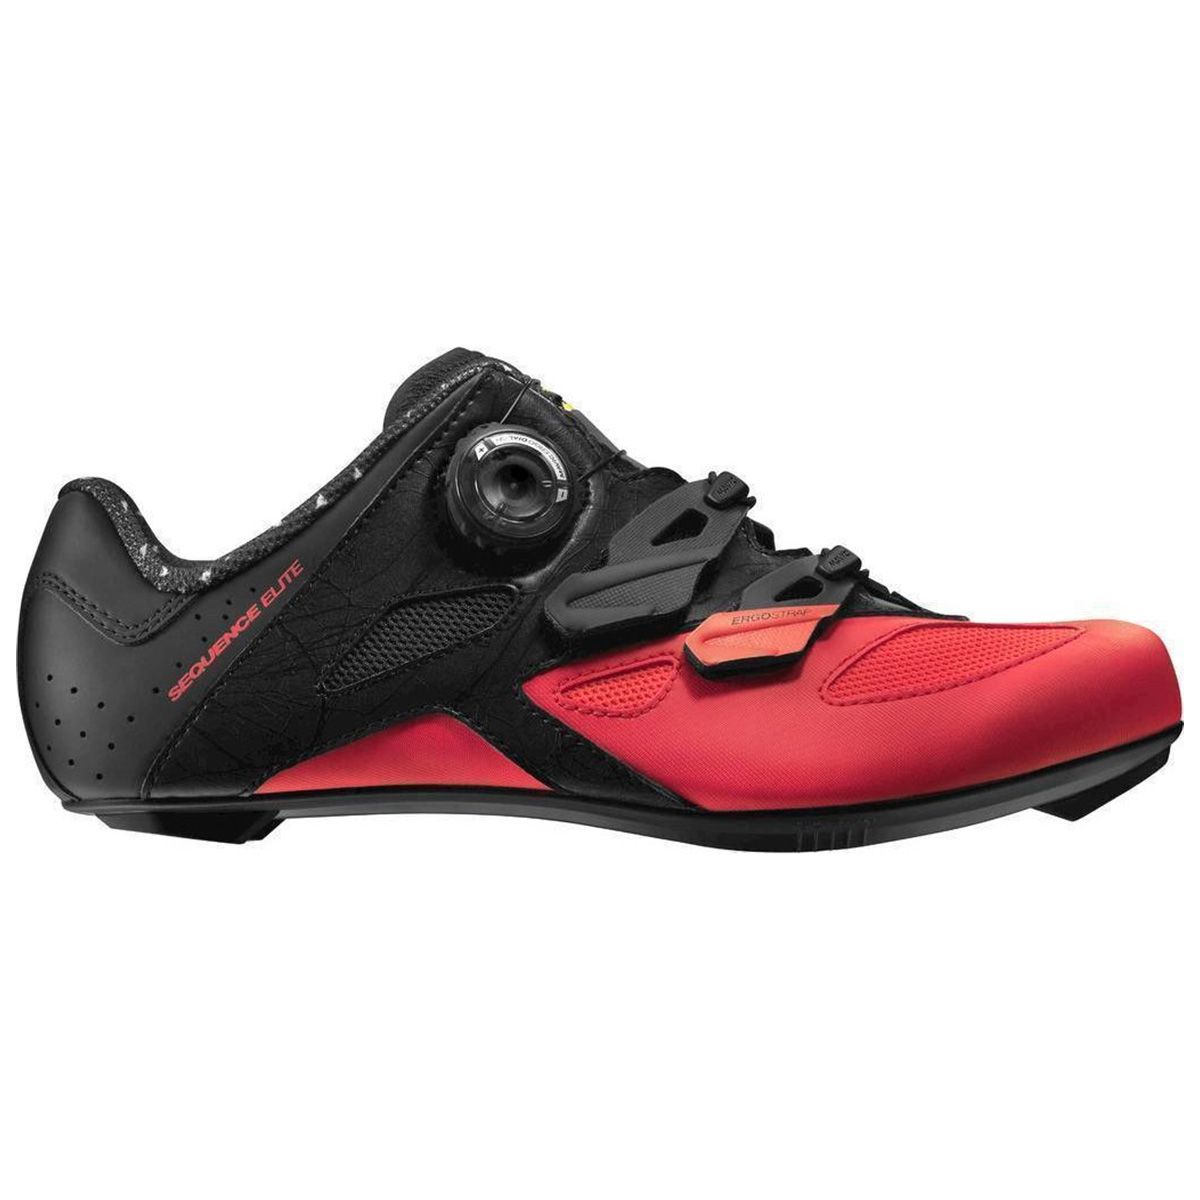 CHAUSSURES MAVIC ROUTE SEQUENCE ELITE